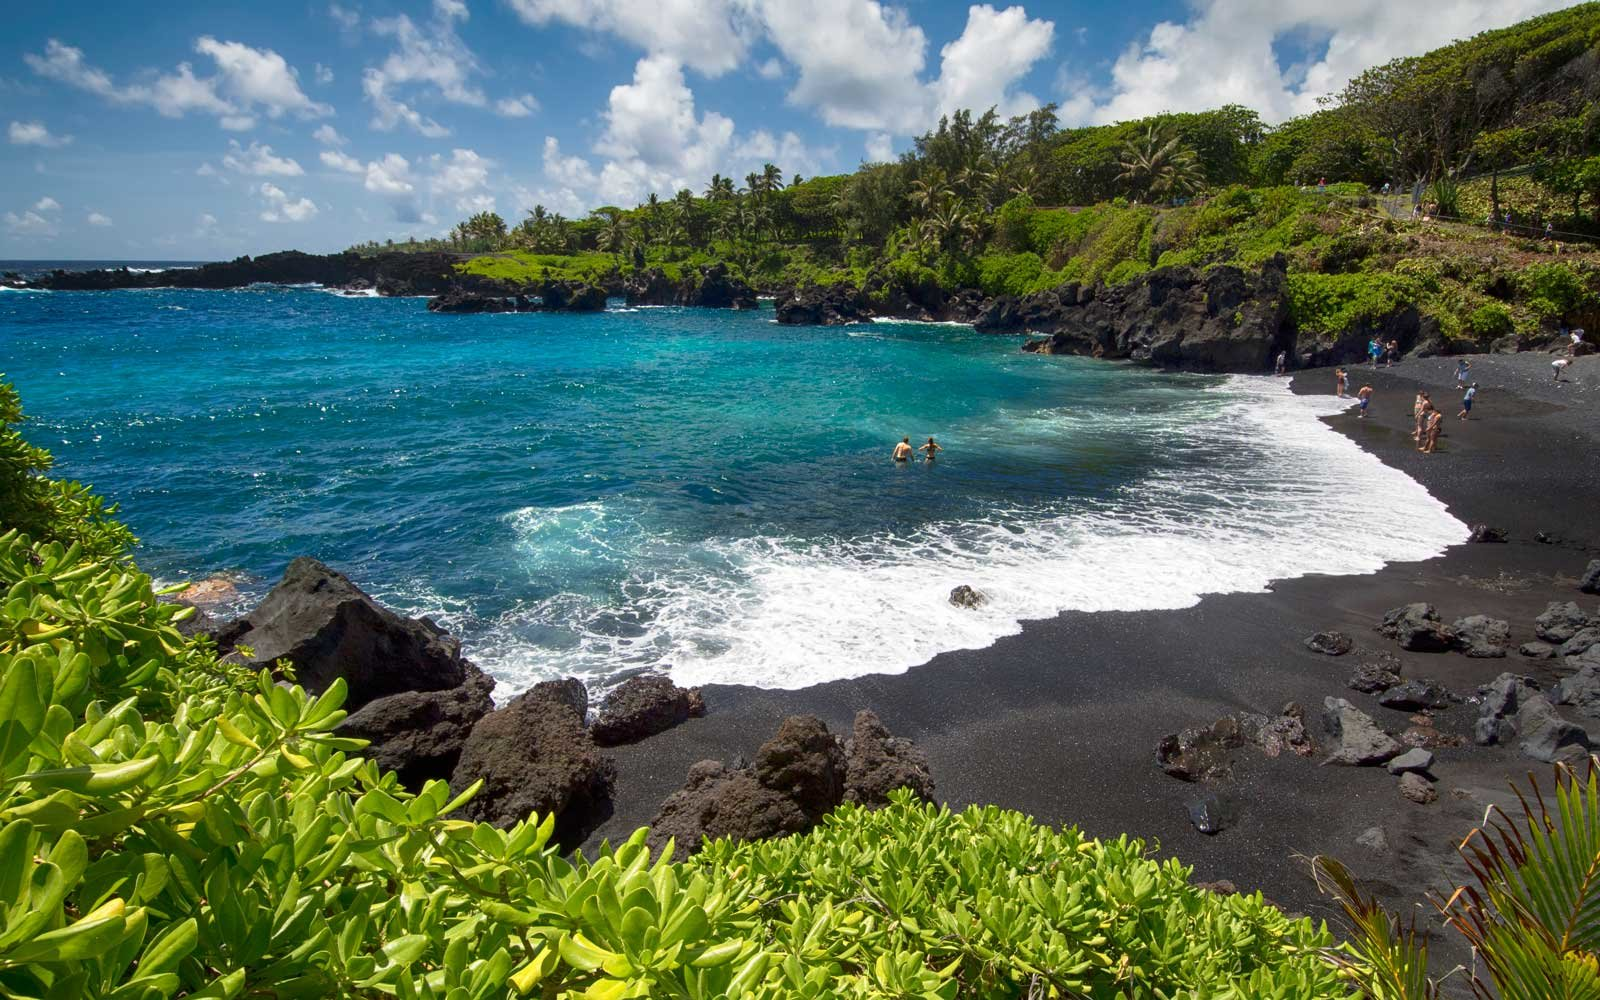 maui-hawaii-black-sand-beach-GETWARMQUICK0118.jpg